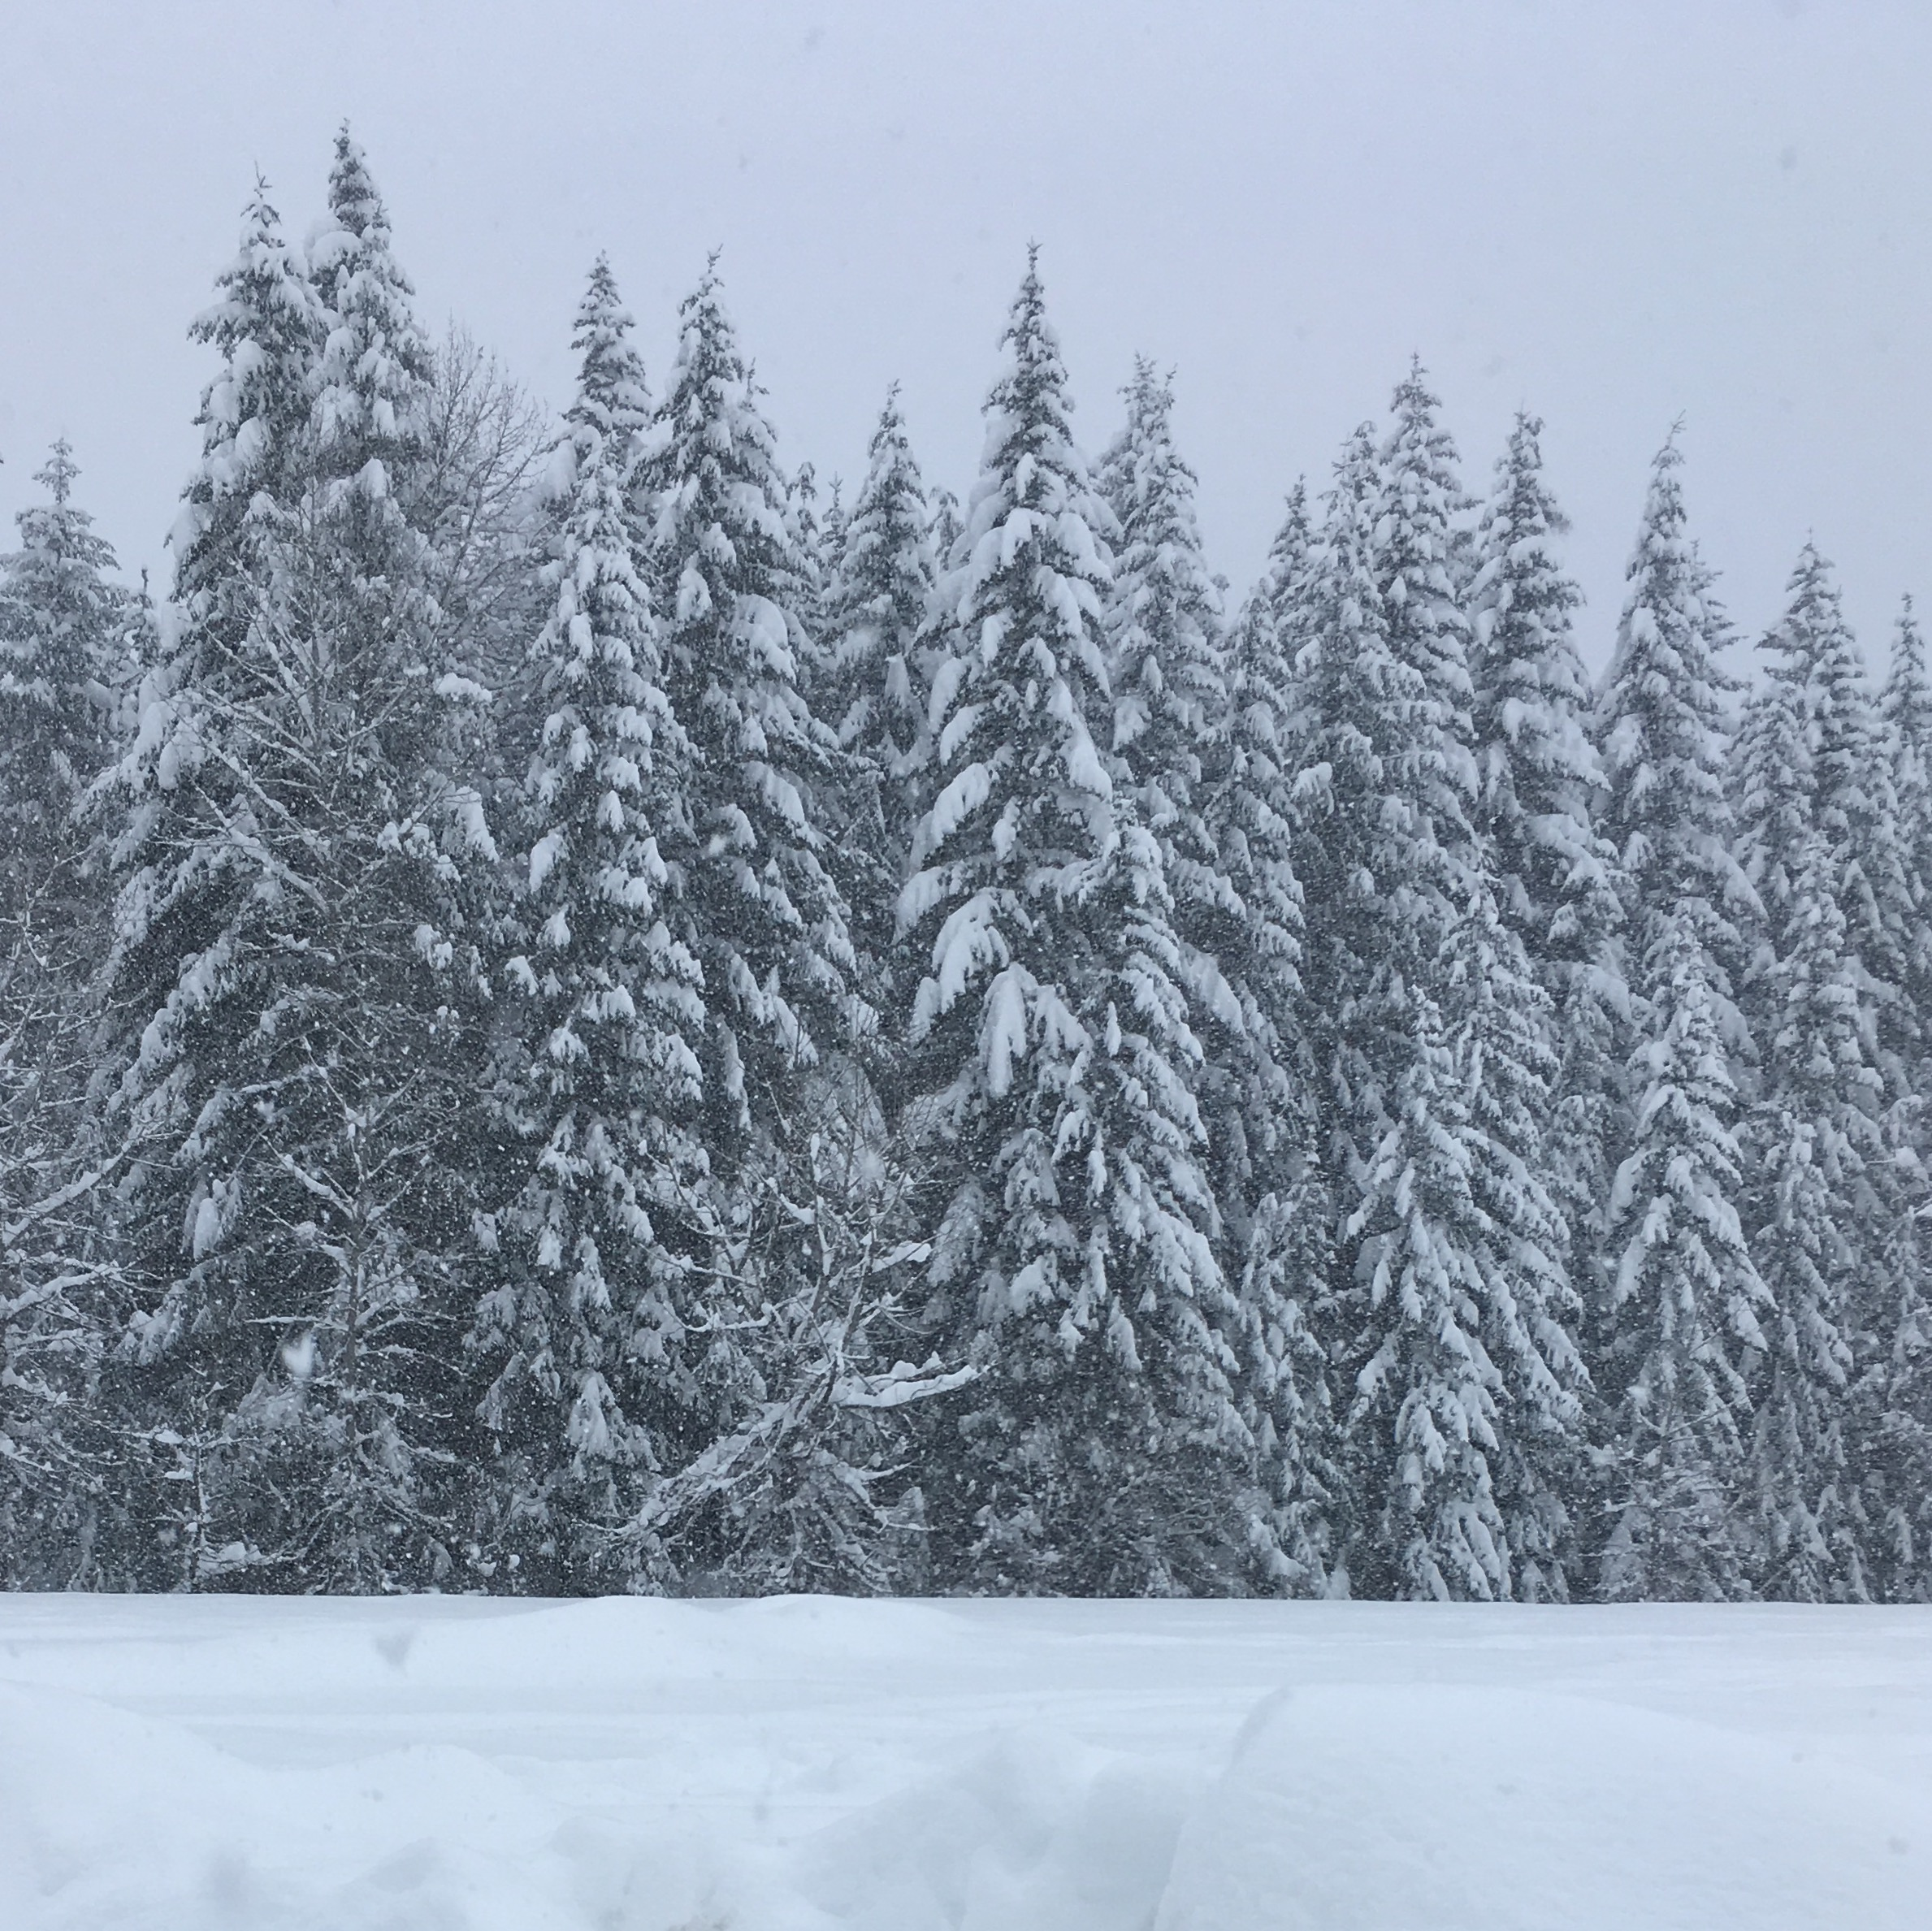 View from Cindy's Fraser's drive over Snoqualmie Pass, Washington!